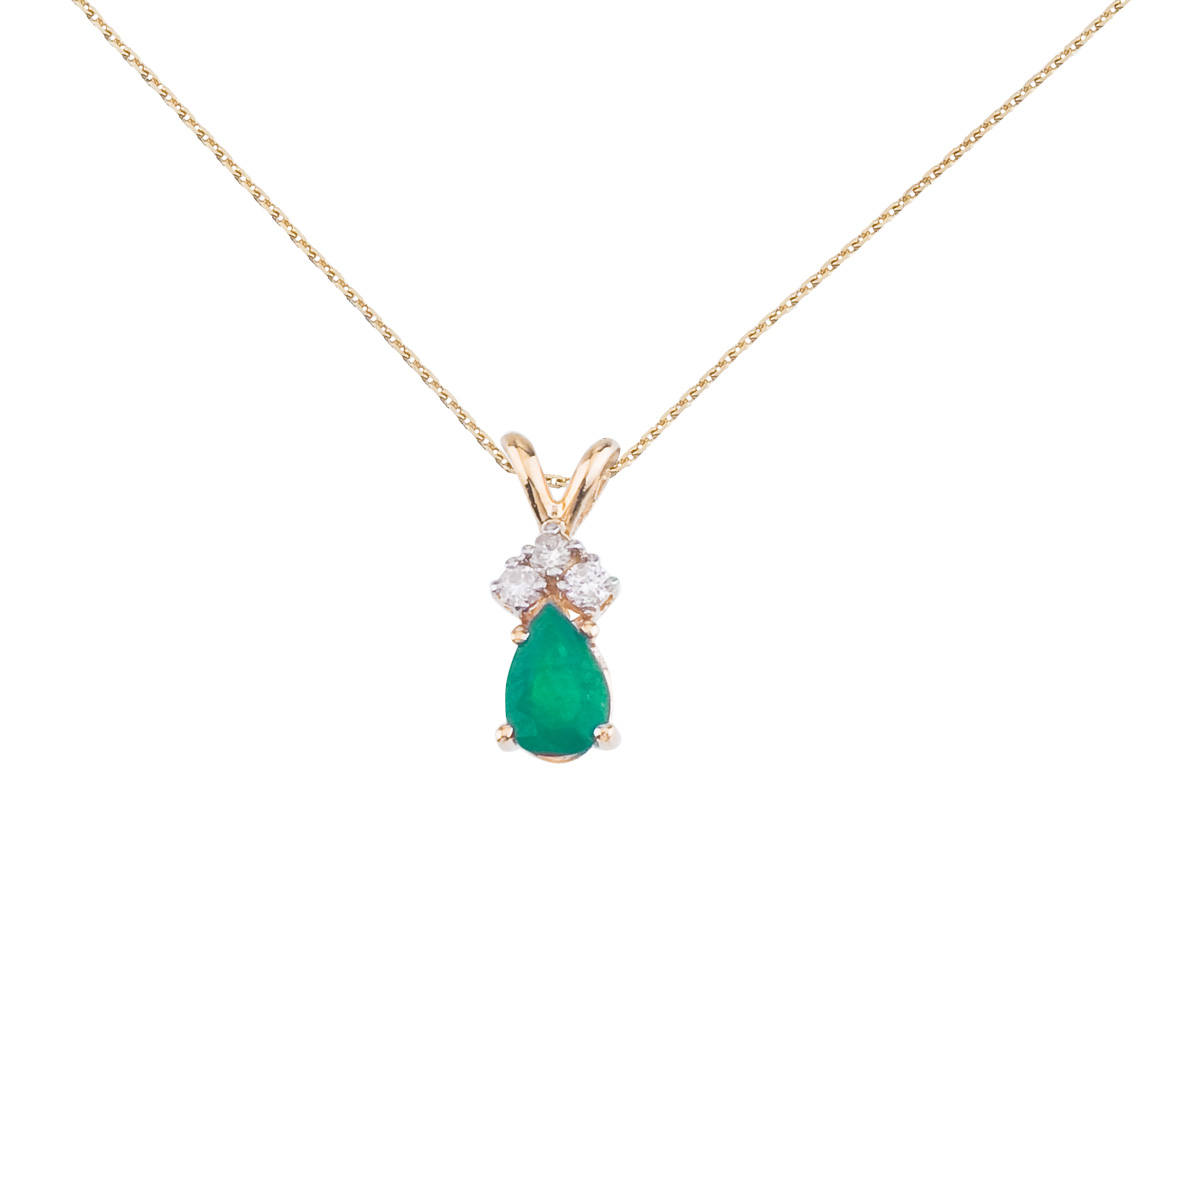 Direct 14K Yellow Gold Pear Shaped Emerald Pendant with D...